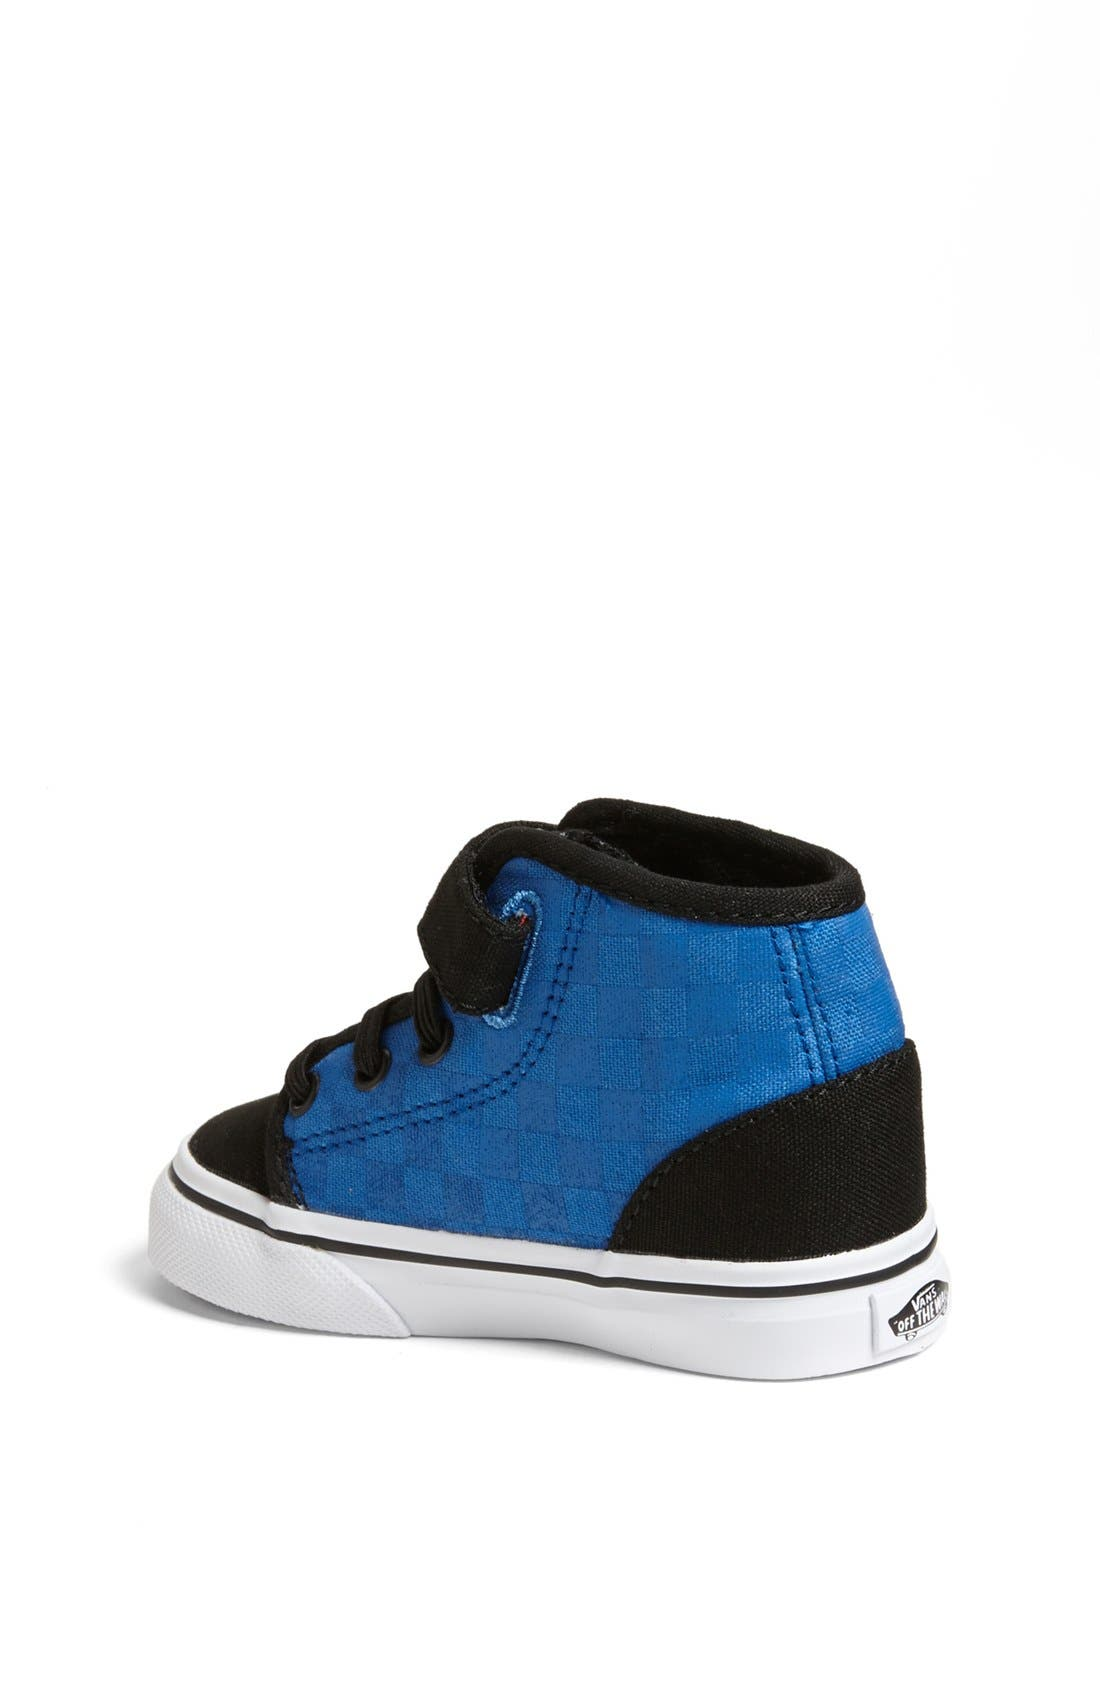 Alternate Image 2  - Vans High Top Sneaker (Baby, Walker & Toddler)